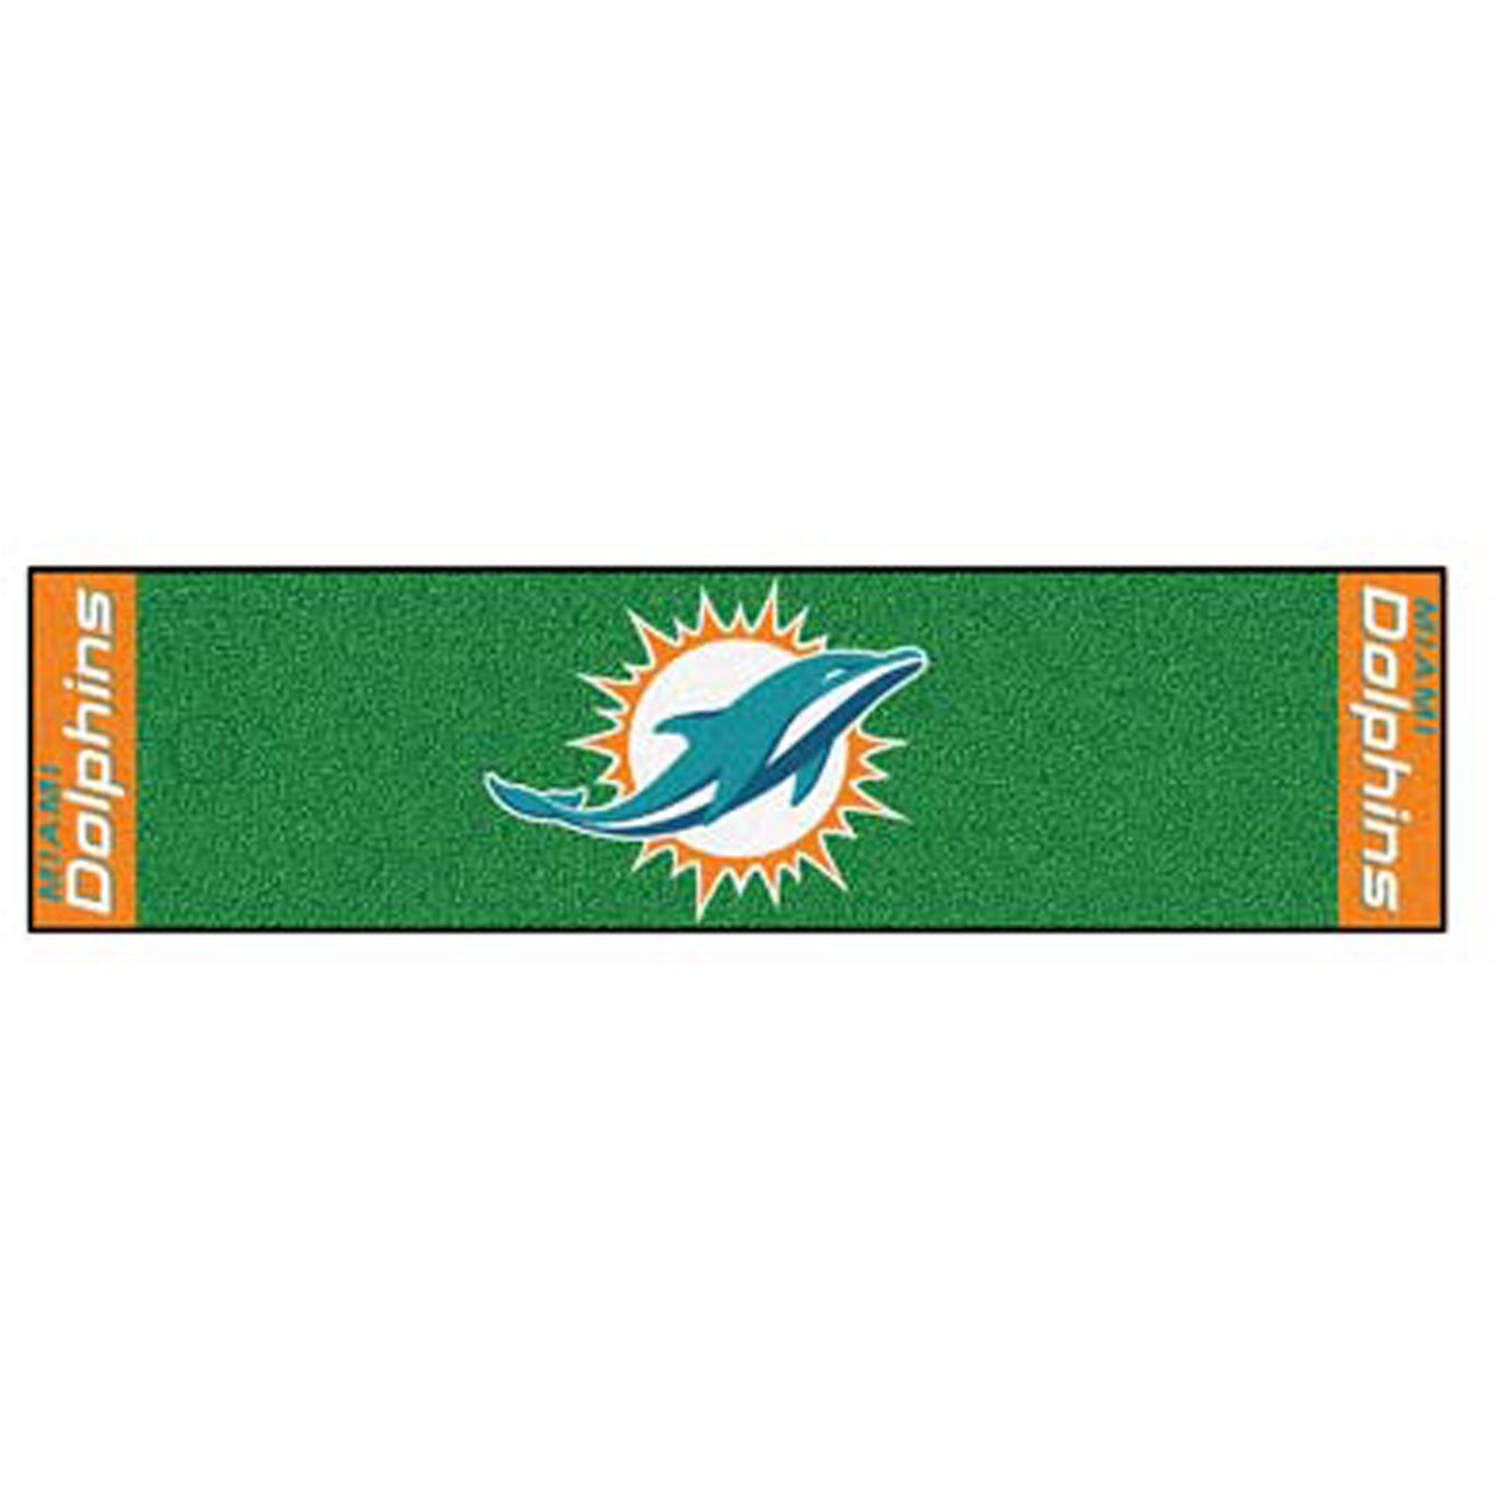 FanMats NFL Miami Dolphins Putting Green Mat